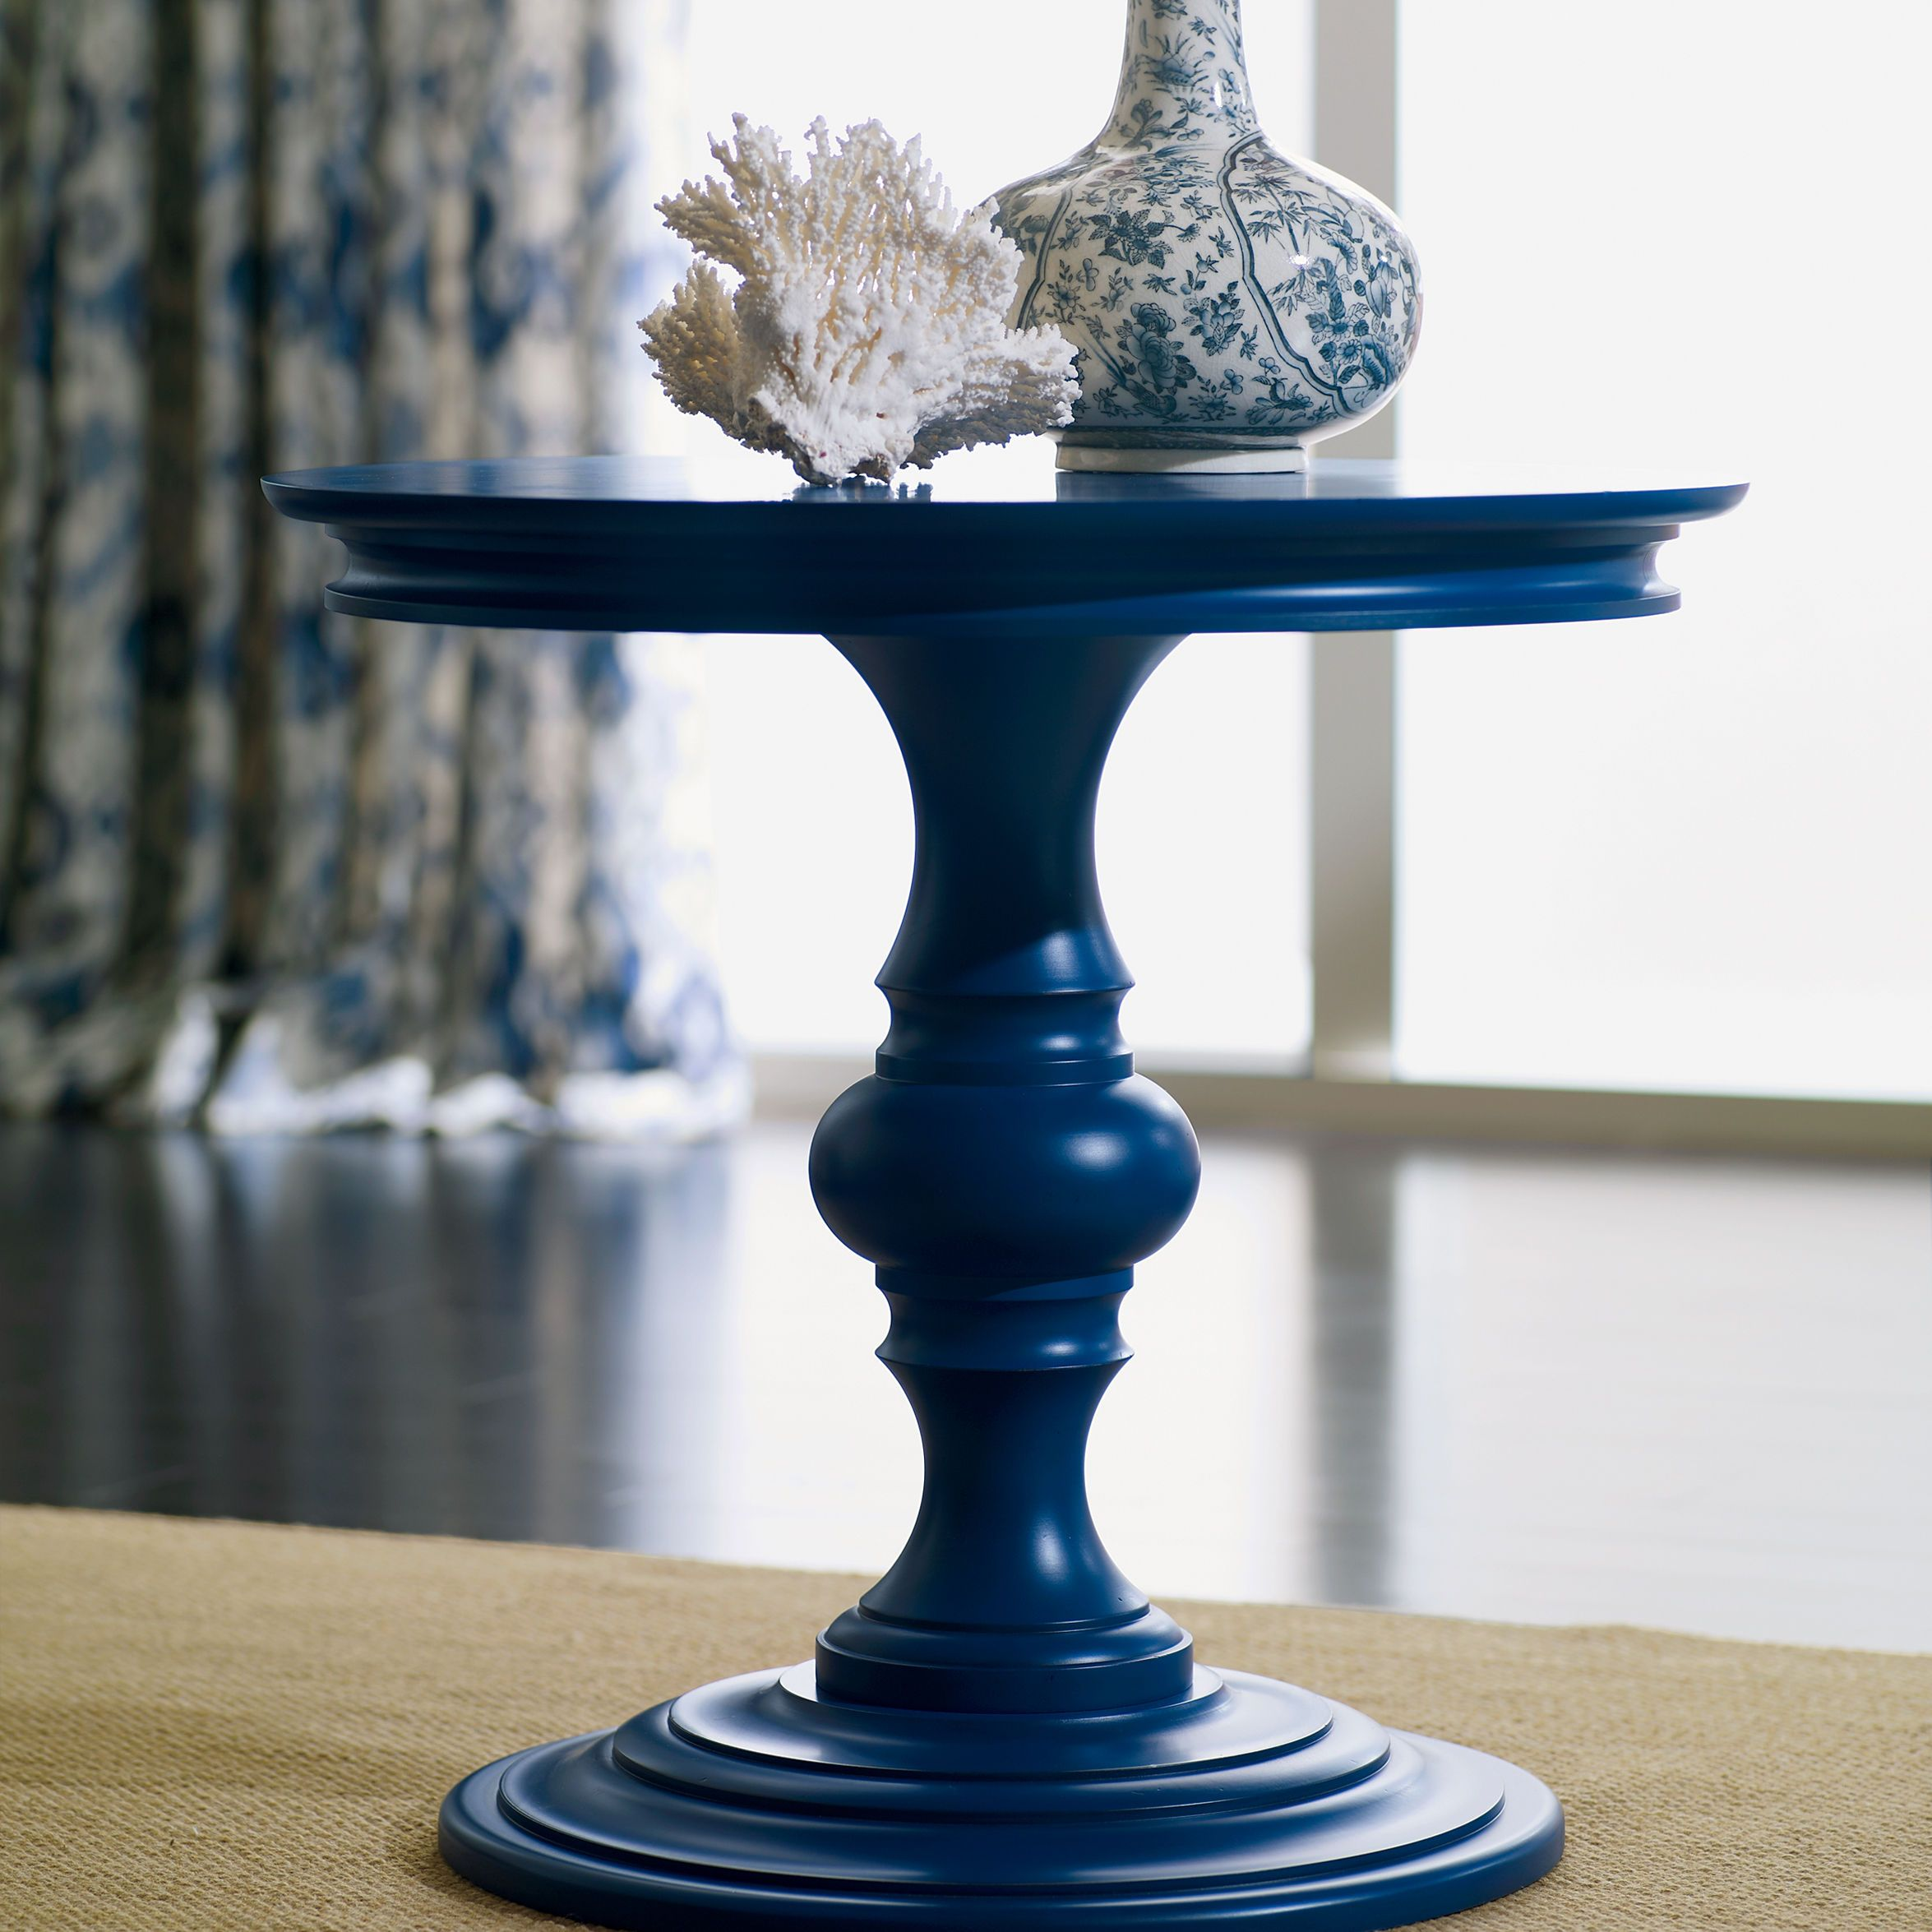 Mix Klein Blue Coastal Milk Paint To Get This Beautiful Navy Color TablesAccent TablesEnd TablesRound Side TableLiving Room